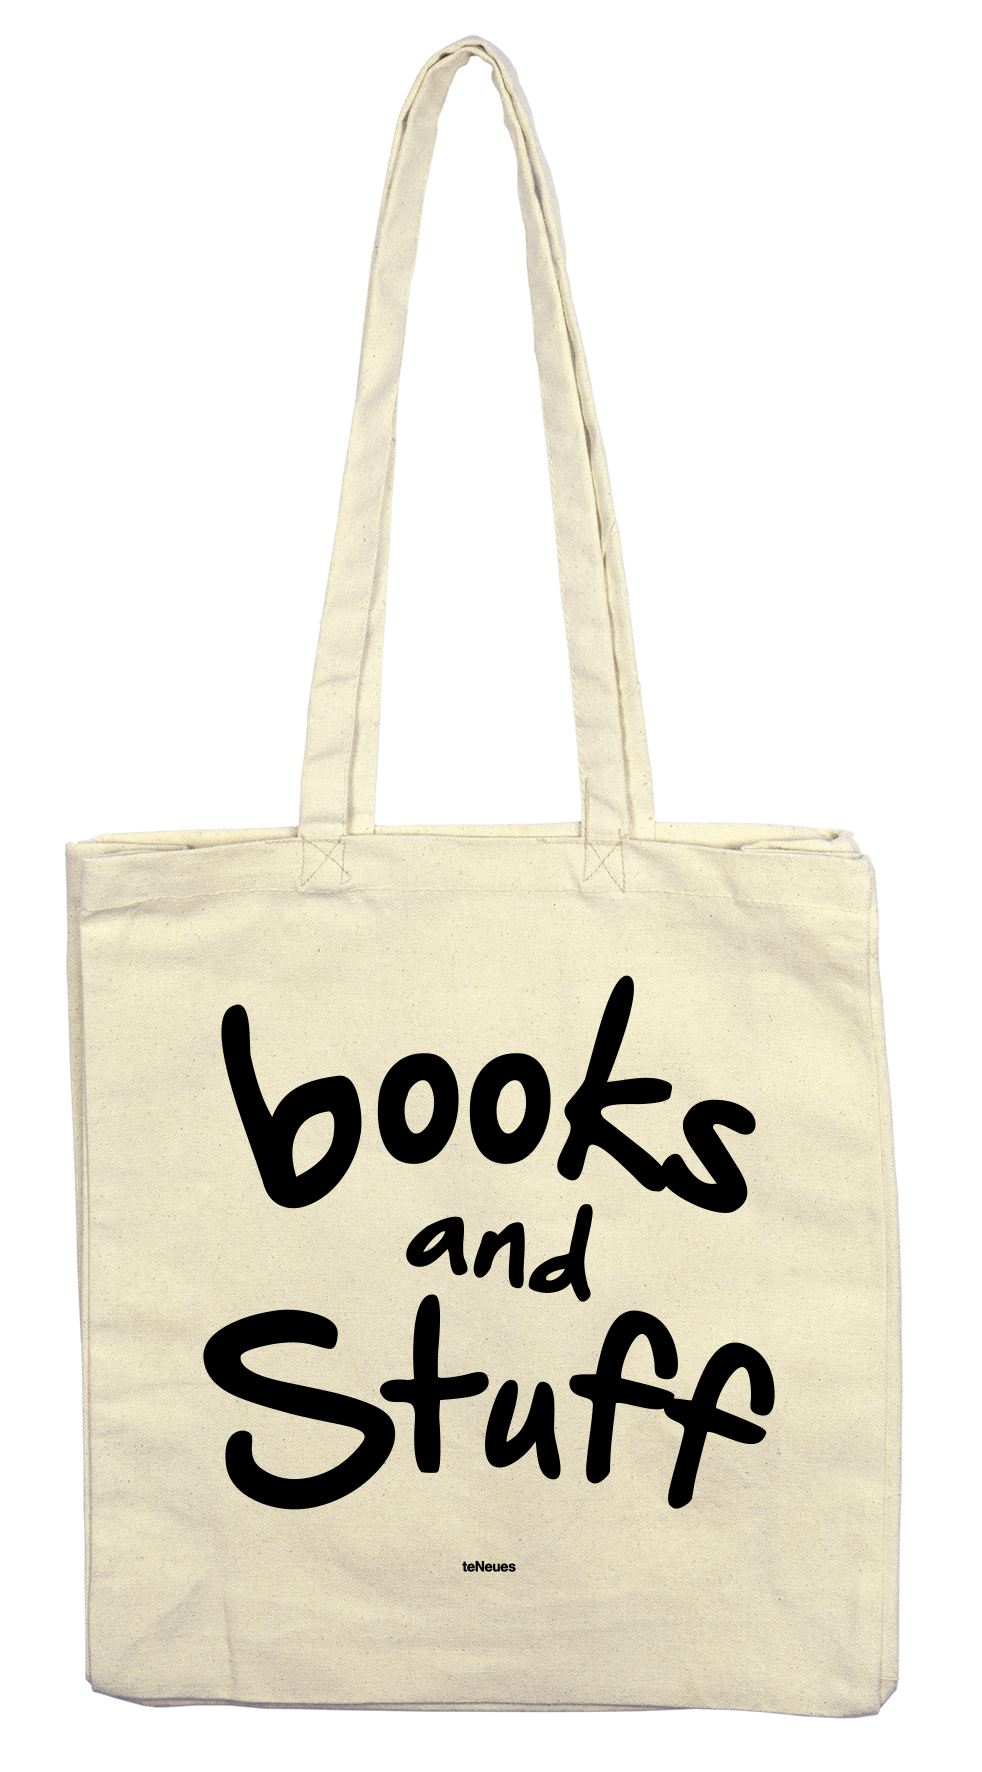 Stofftasche books and stuff